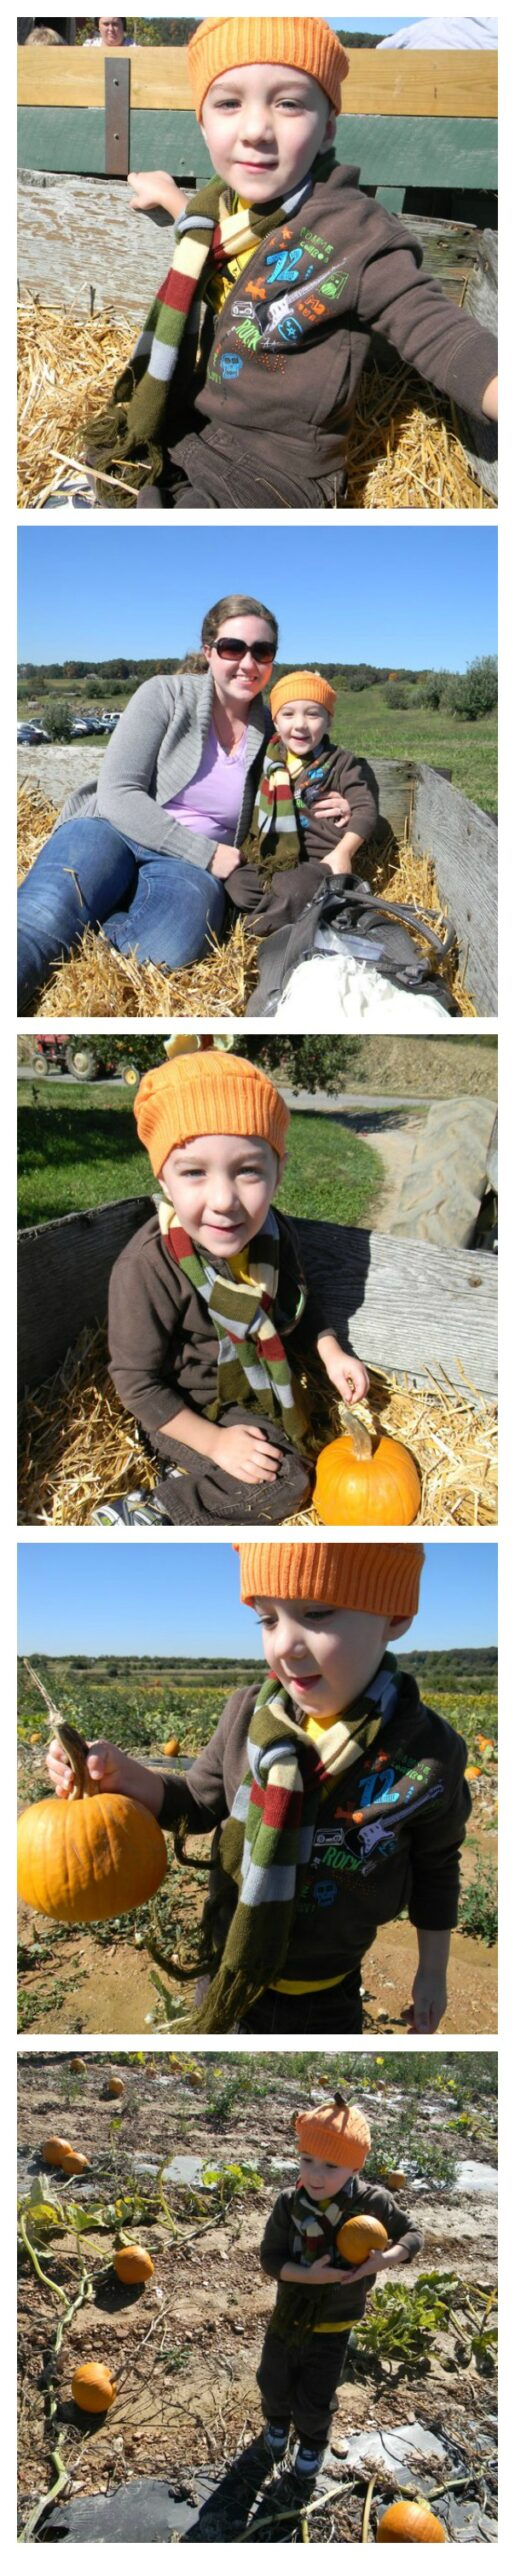 Pumpkin Sweater Hat How to turn an old sweater into an adorable fall hat for your toddler. This is a great beginner sewing project!